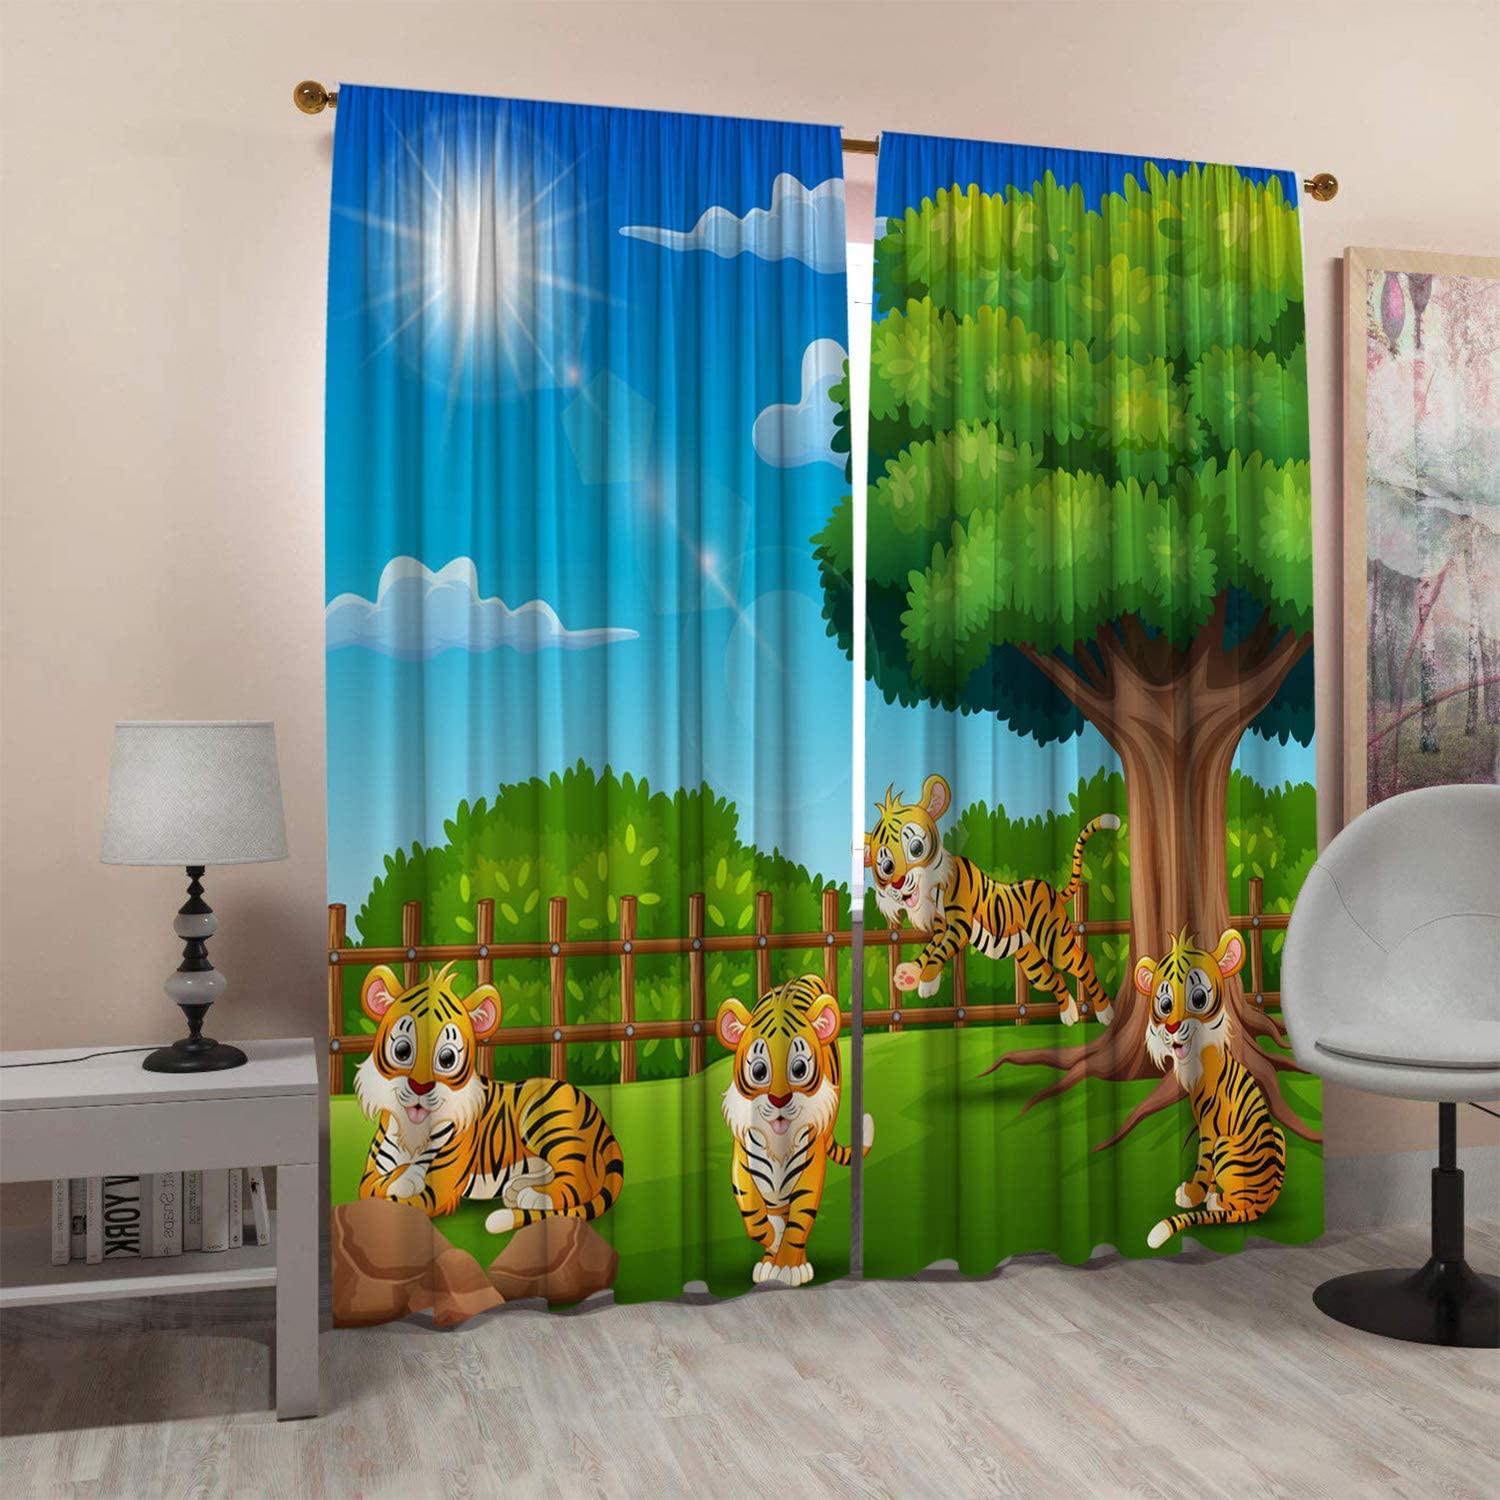 SeptSonne Kids Room Window Curtain Panels Drapes The Little Tiger is A Cage to Enjoy Nature Kids Curtains Boys Artwork Customized Curtains 42x63 Inch